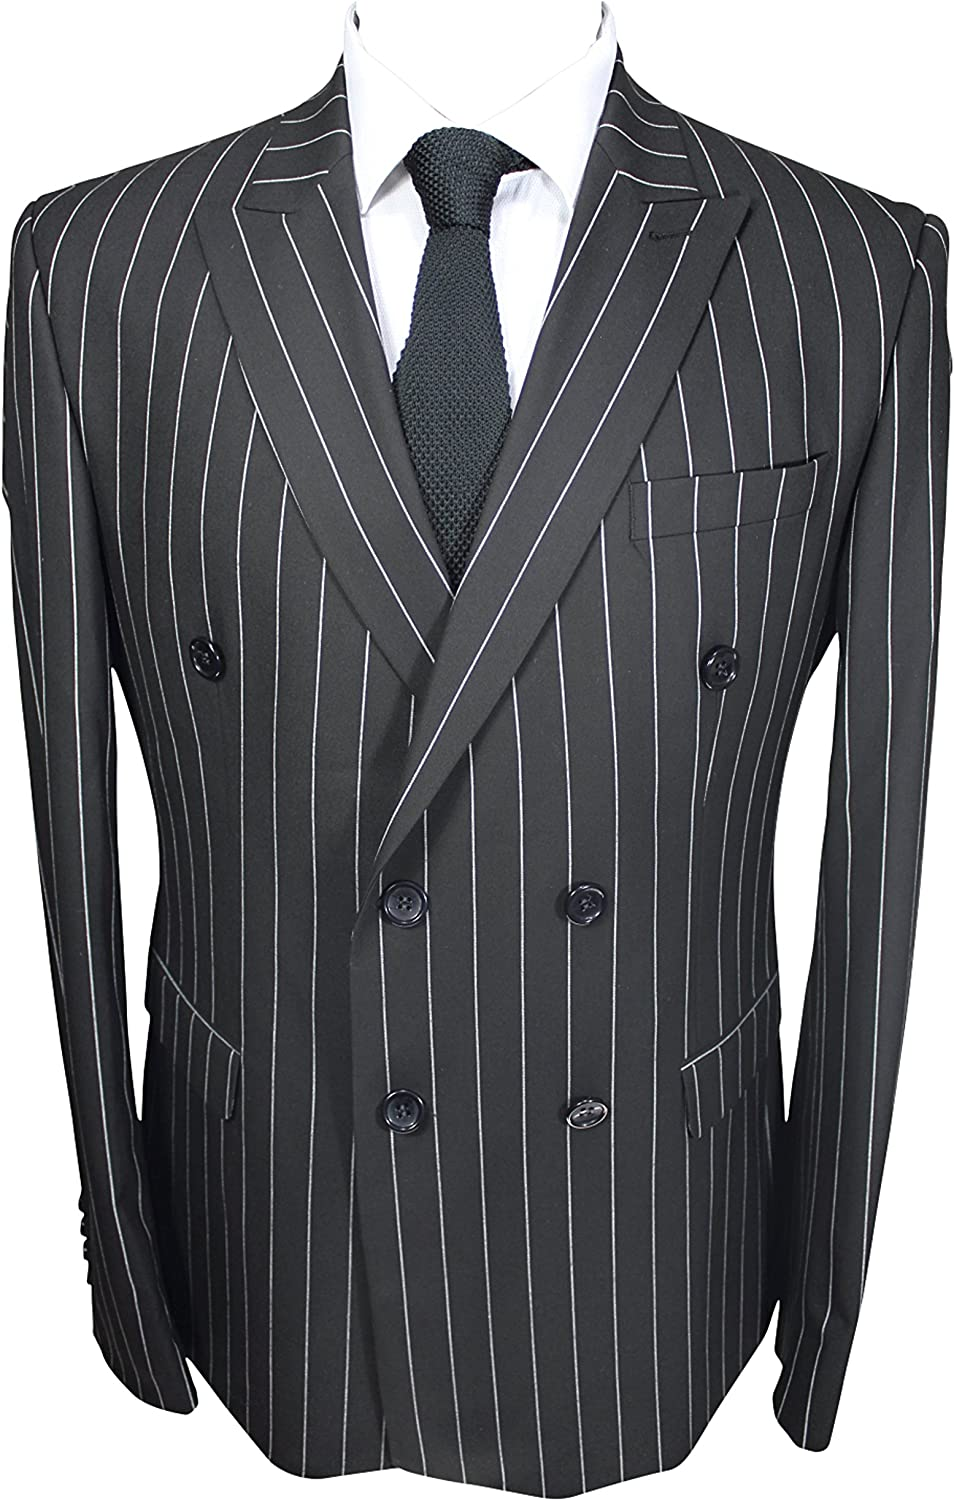 Grey Prince of Wales Glen Check Double Breasted Suit Jack Martin